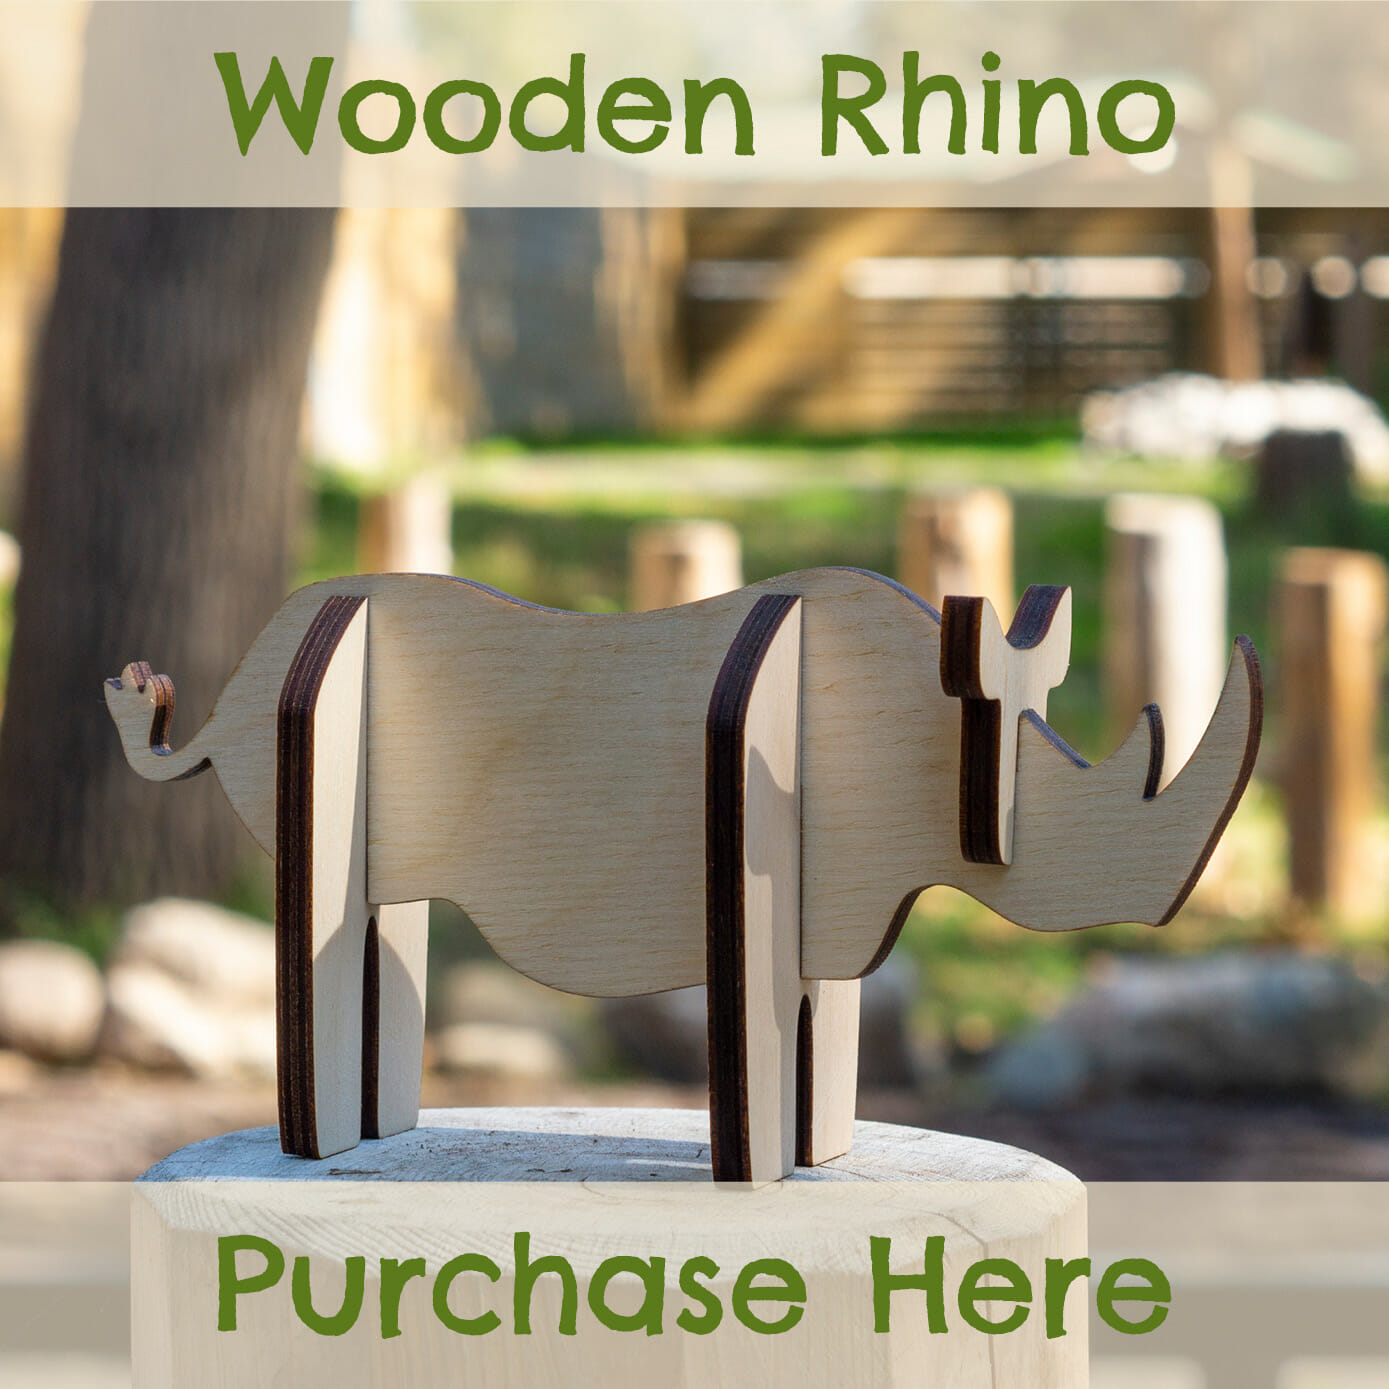 purchase a wooden rhino to commemorate Masamba's arrival